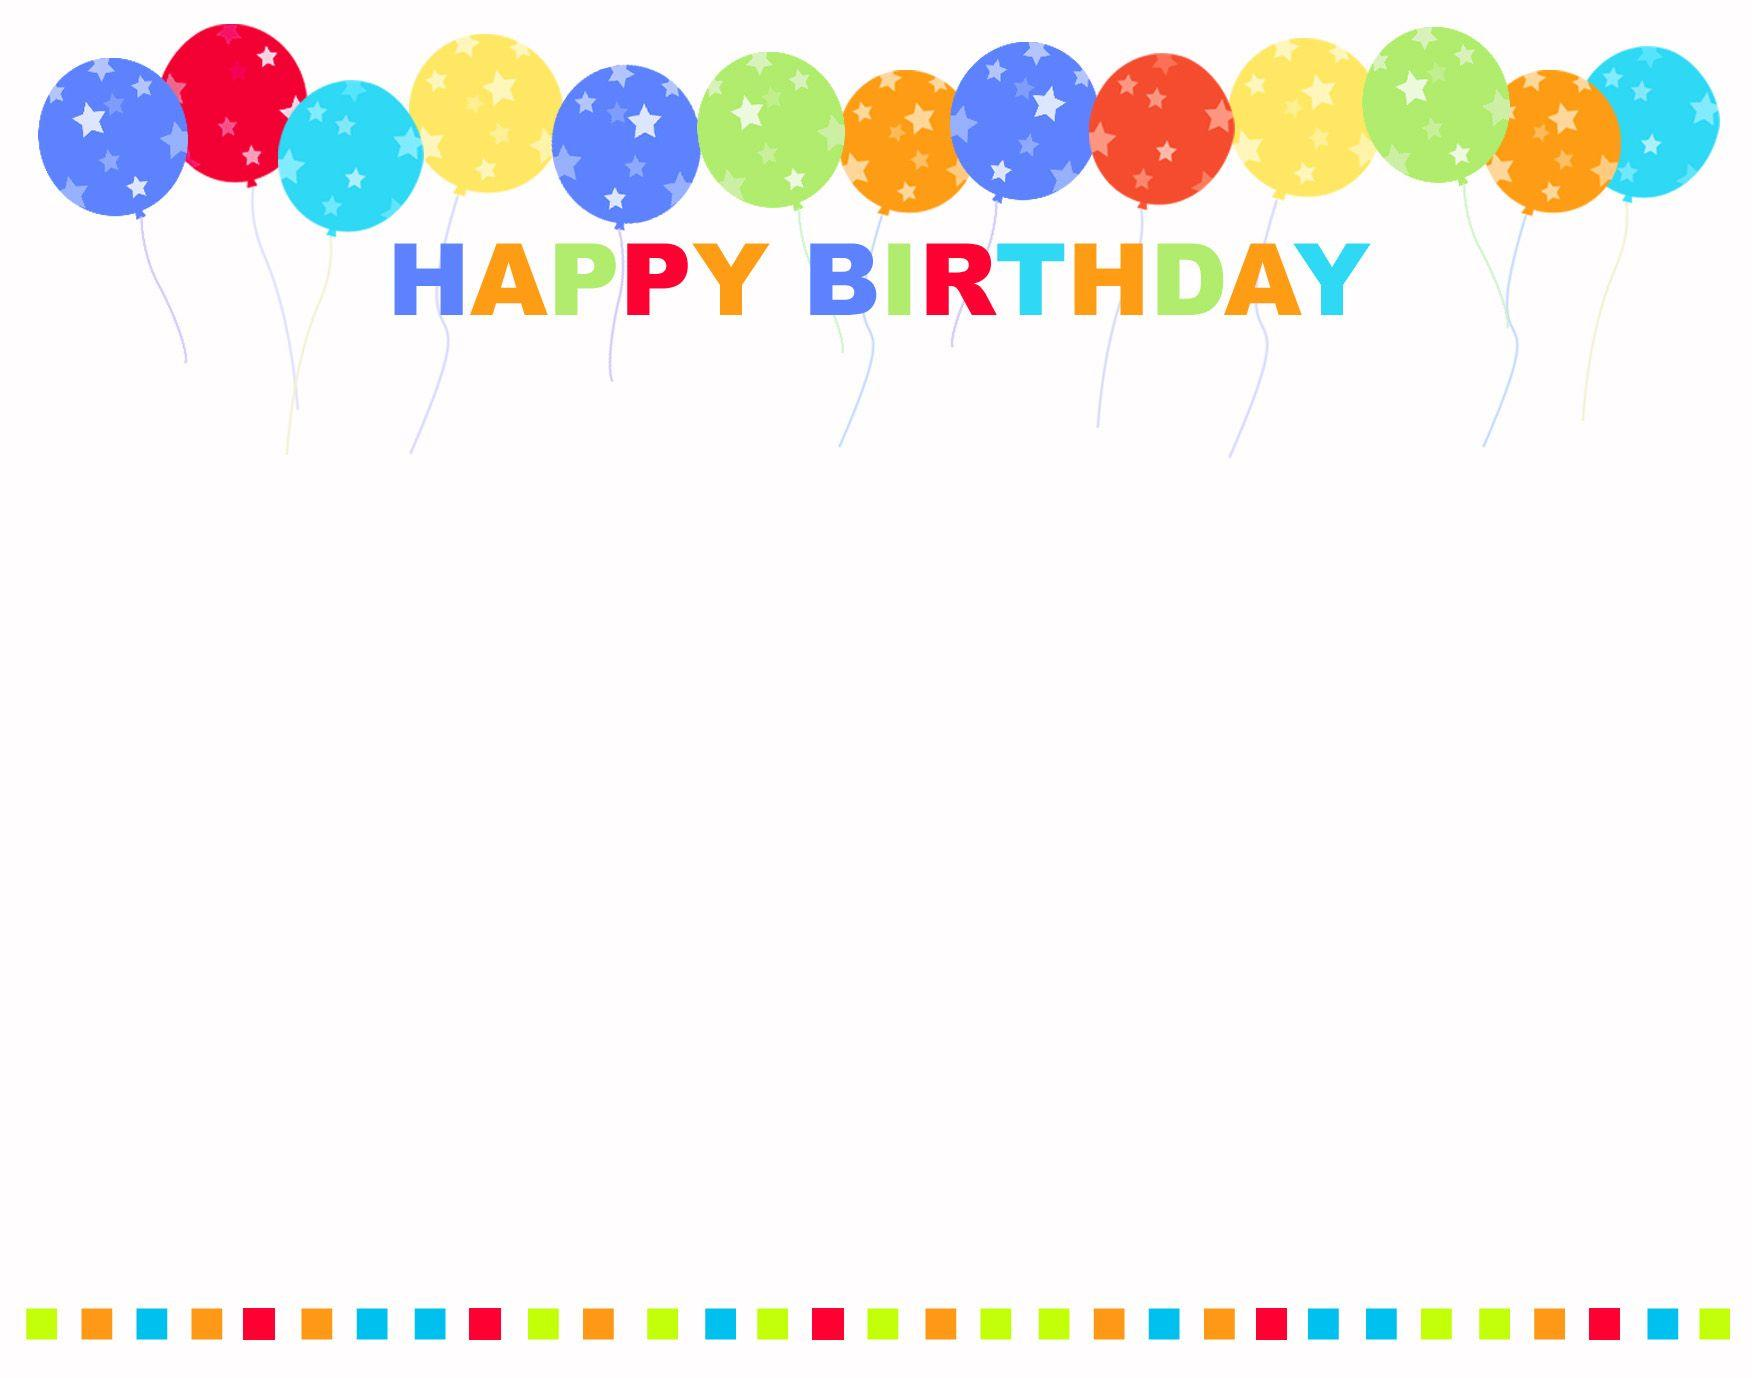 Free Wallpaper Birthday Love : Birthday Backgrounds - Wallpaper cave